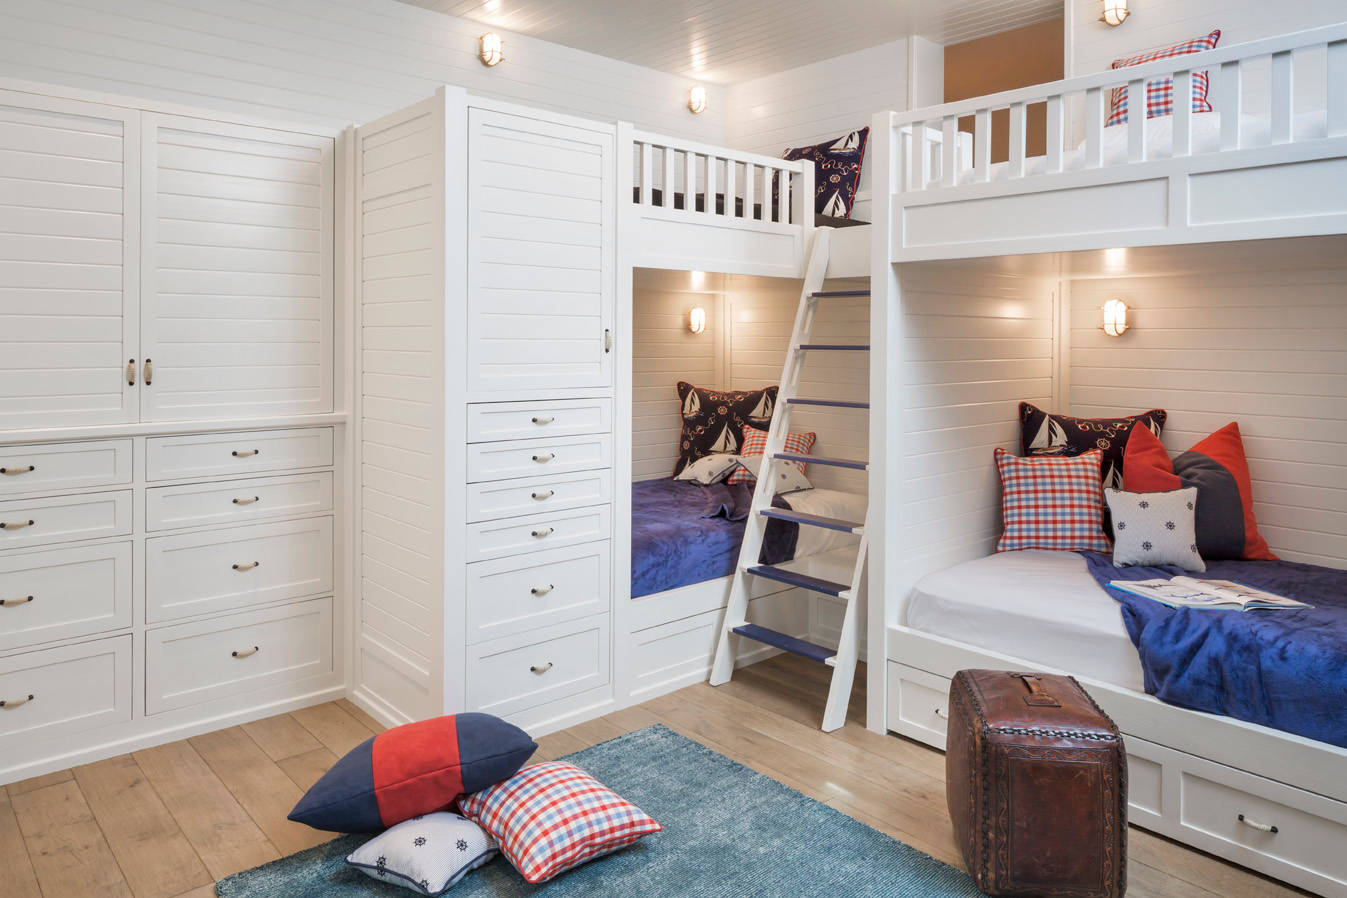 16 Lovely Mediterranean Kids' Room Designs For All Ages on Rooms For Teenagers  id=59352